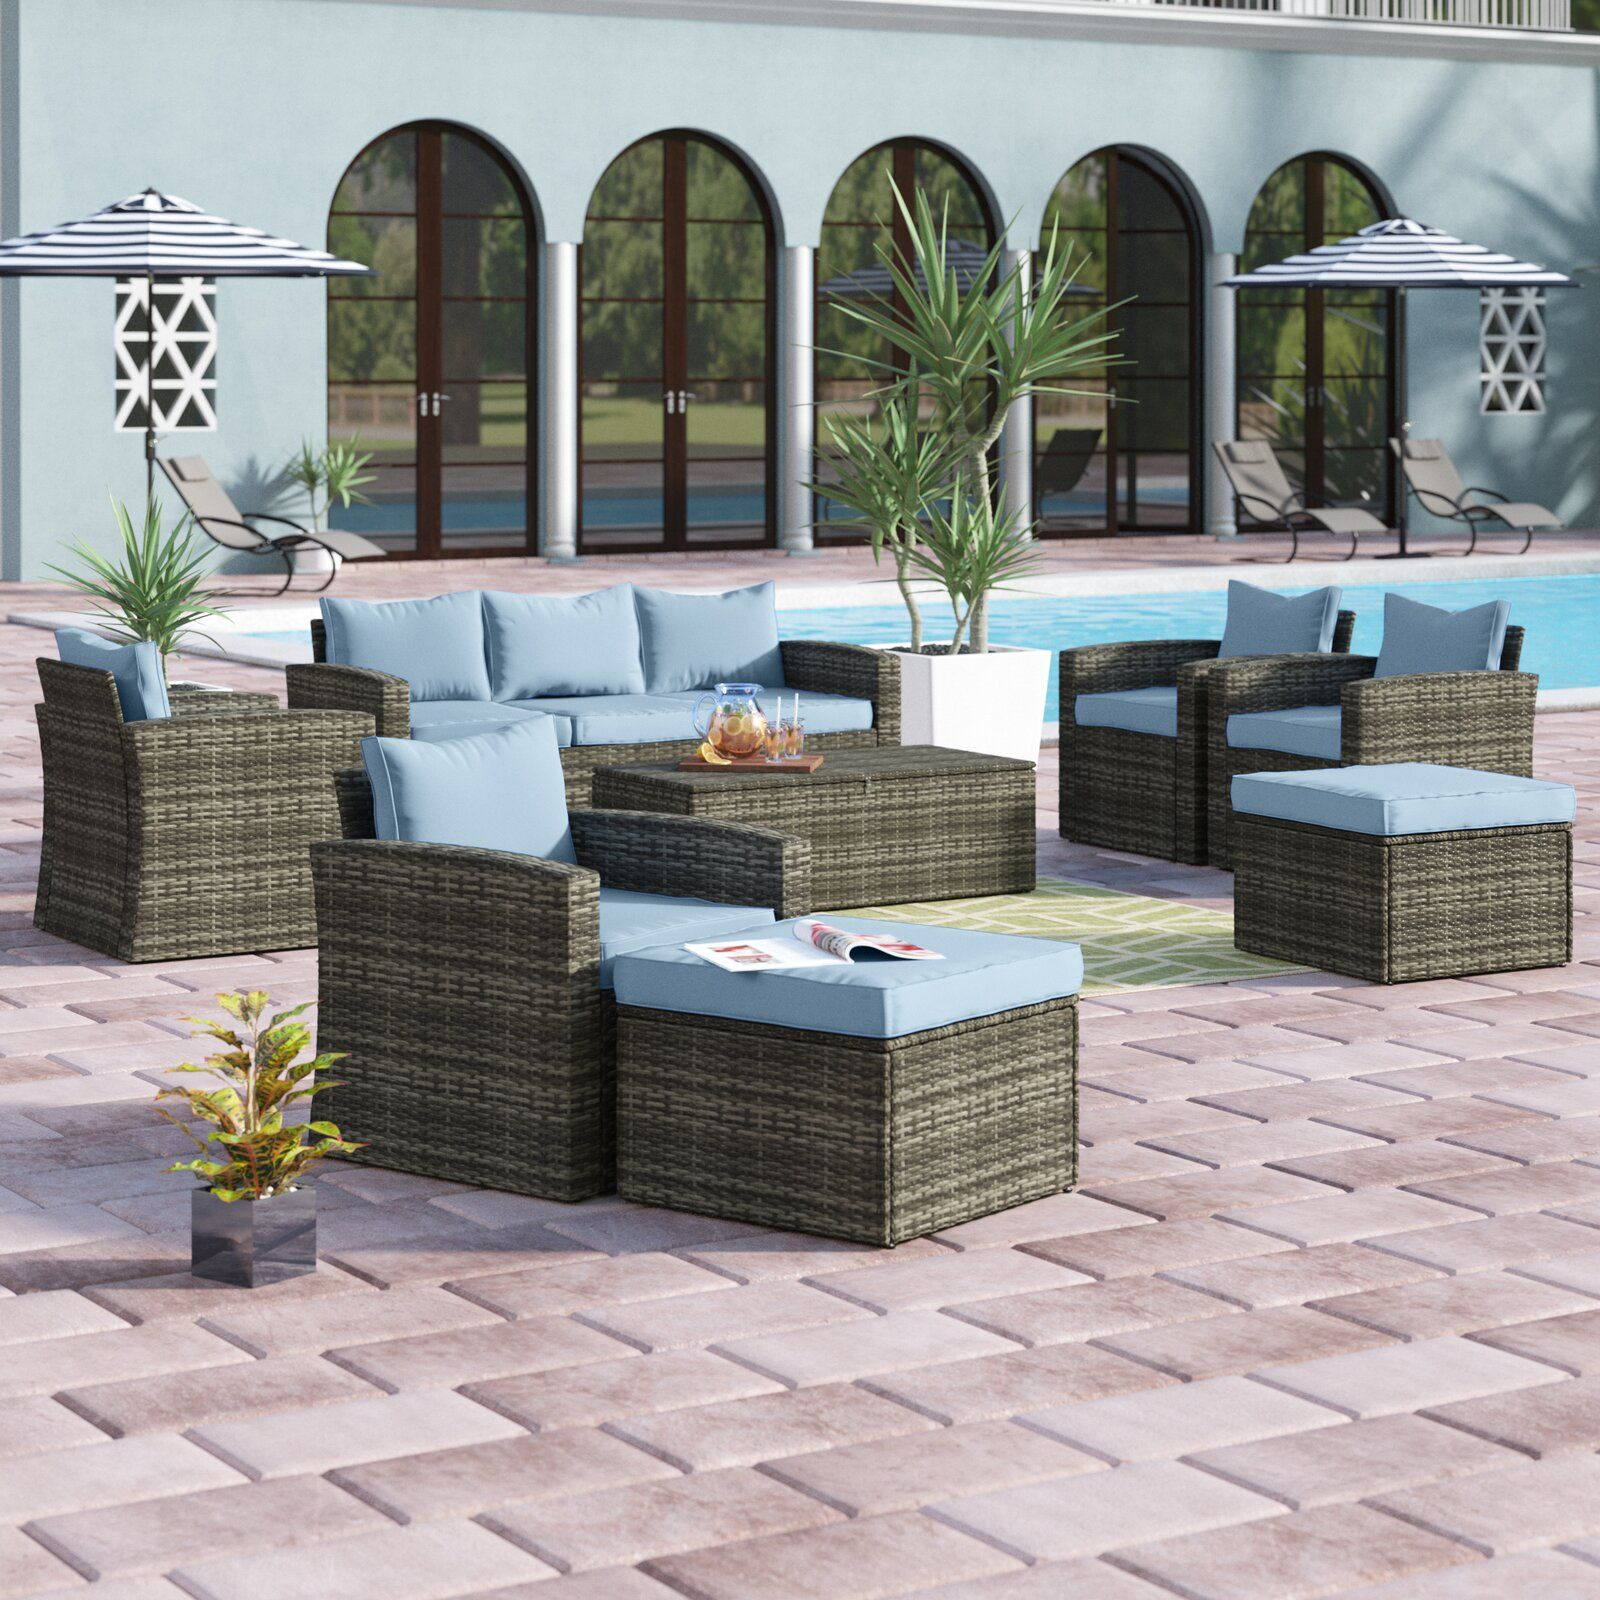 Best Arlington 5 Piece Rattan Sofa Seating Group With Cushions 400 x 300